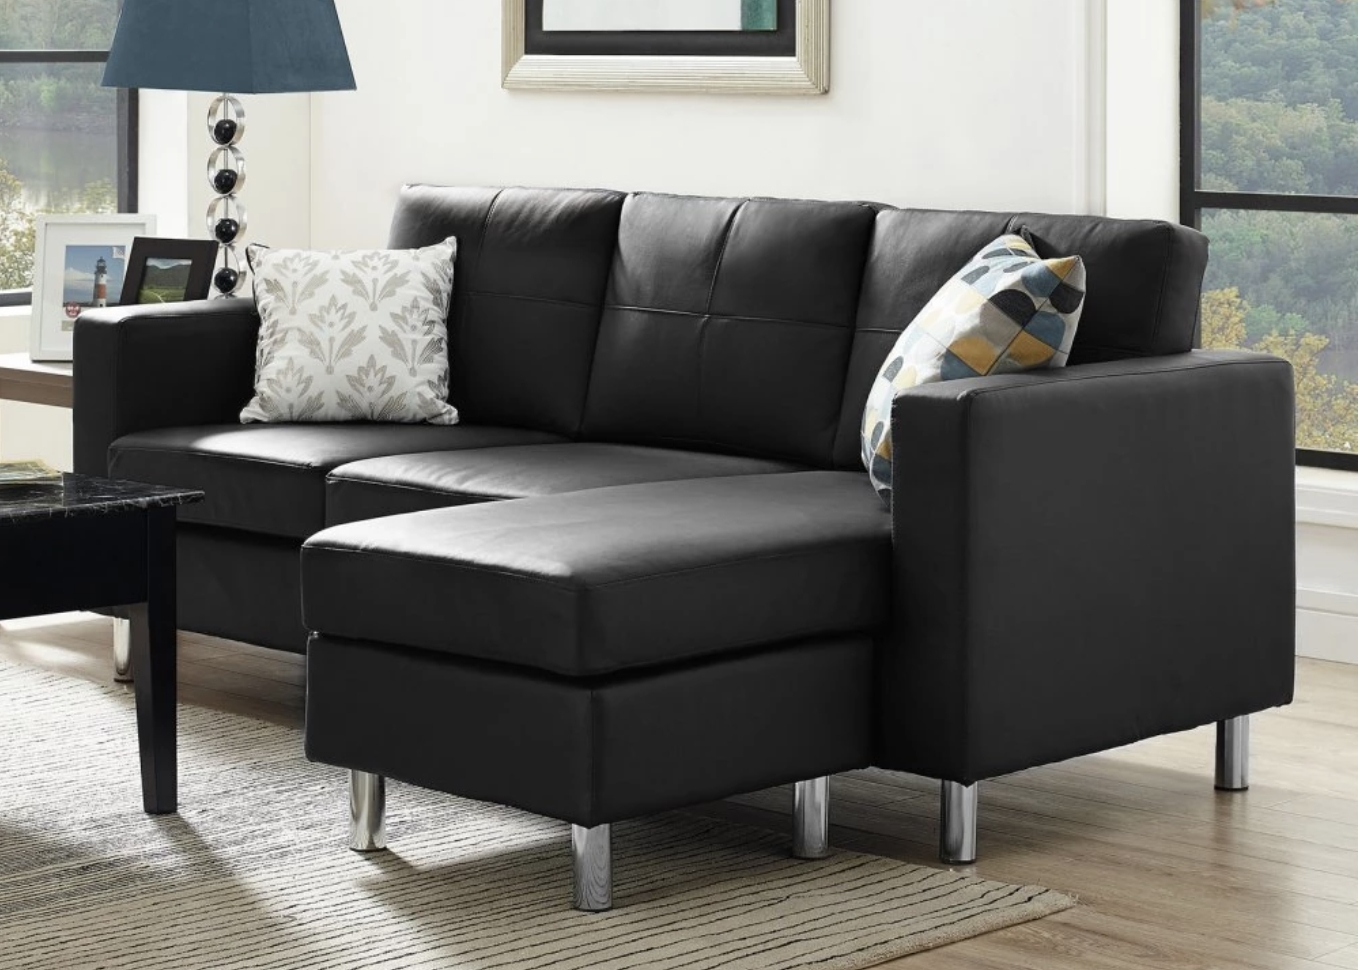 Well Known 100x80 Sectional Sofas Regarding 75 Modern Sectional Sofas For Small Spaces (2018) (View 6 of 20)